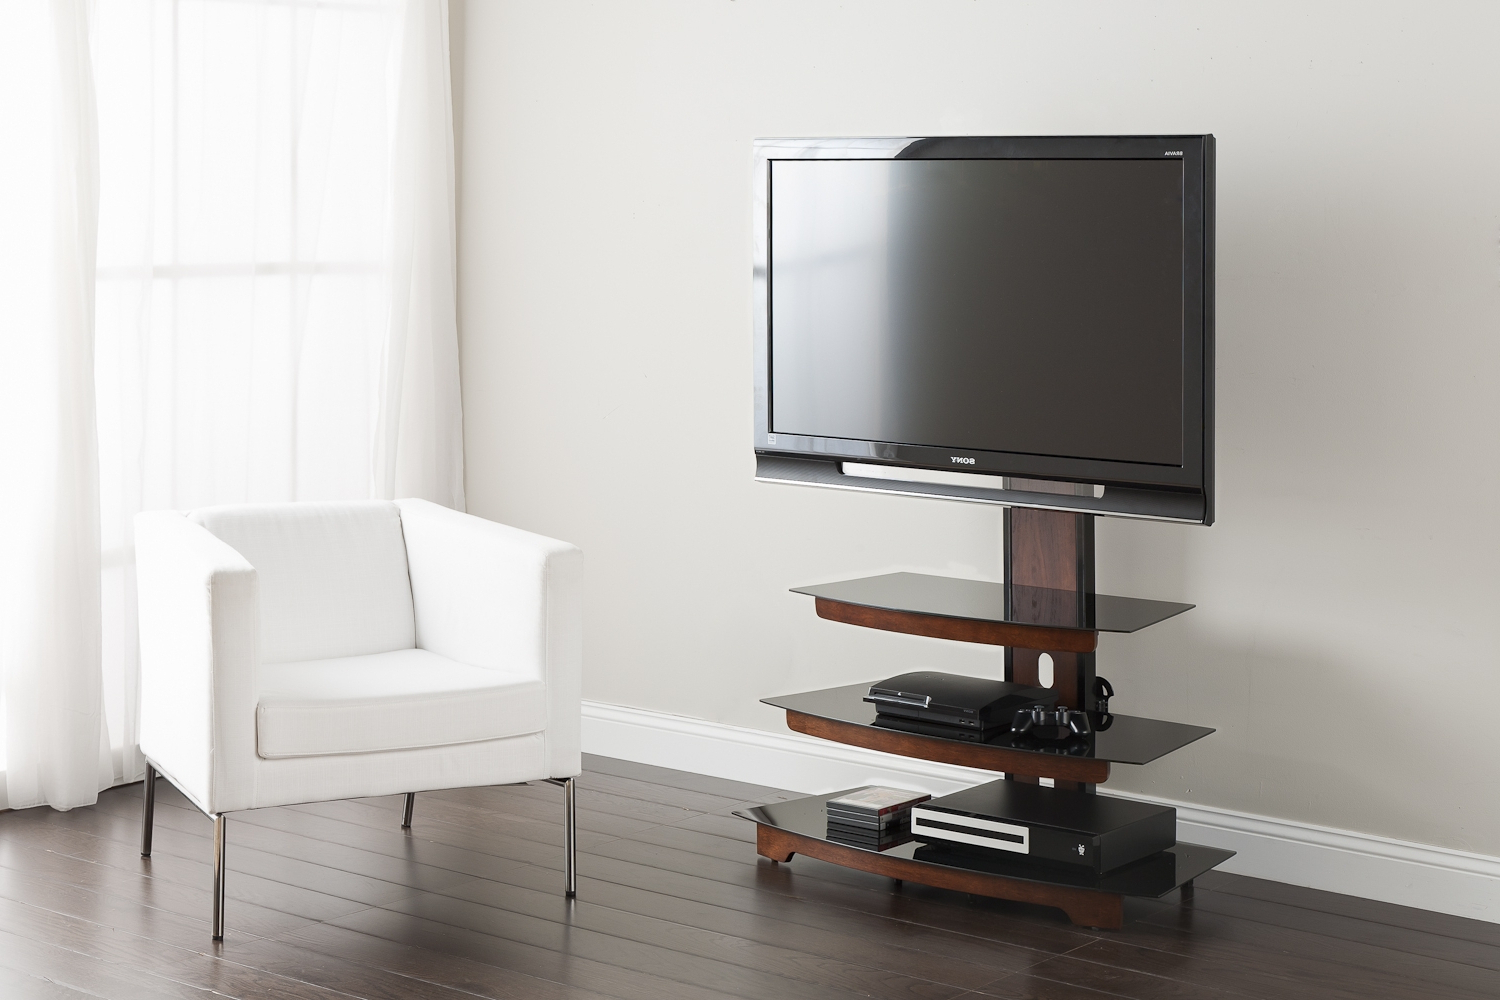 Famous Trendy Tv Stands With Regard To Television Cabinets Tv Stands With Mount Small For Bedroom Tall Ikea (View 6 of 20)